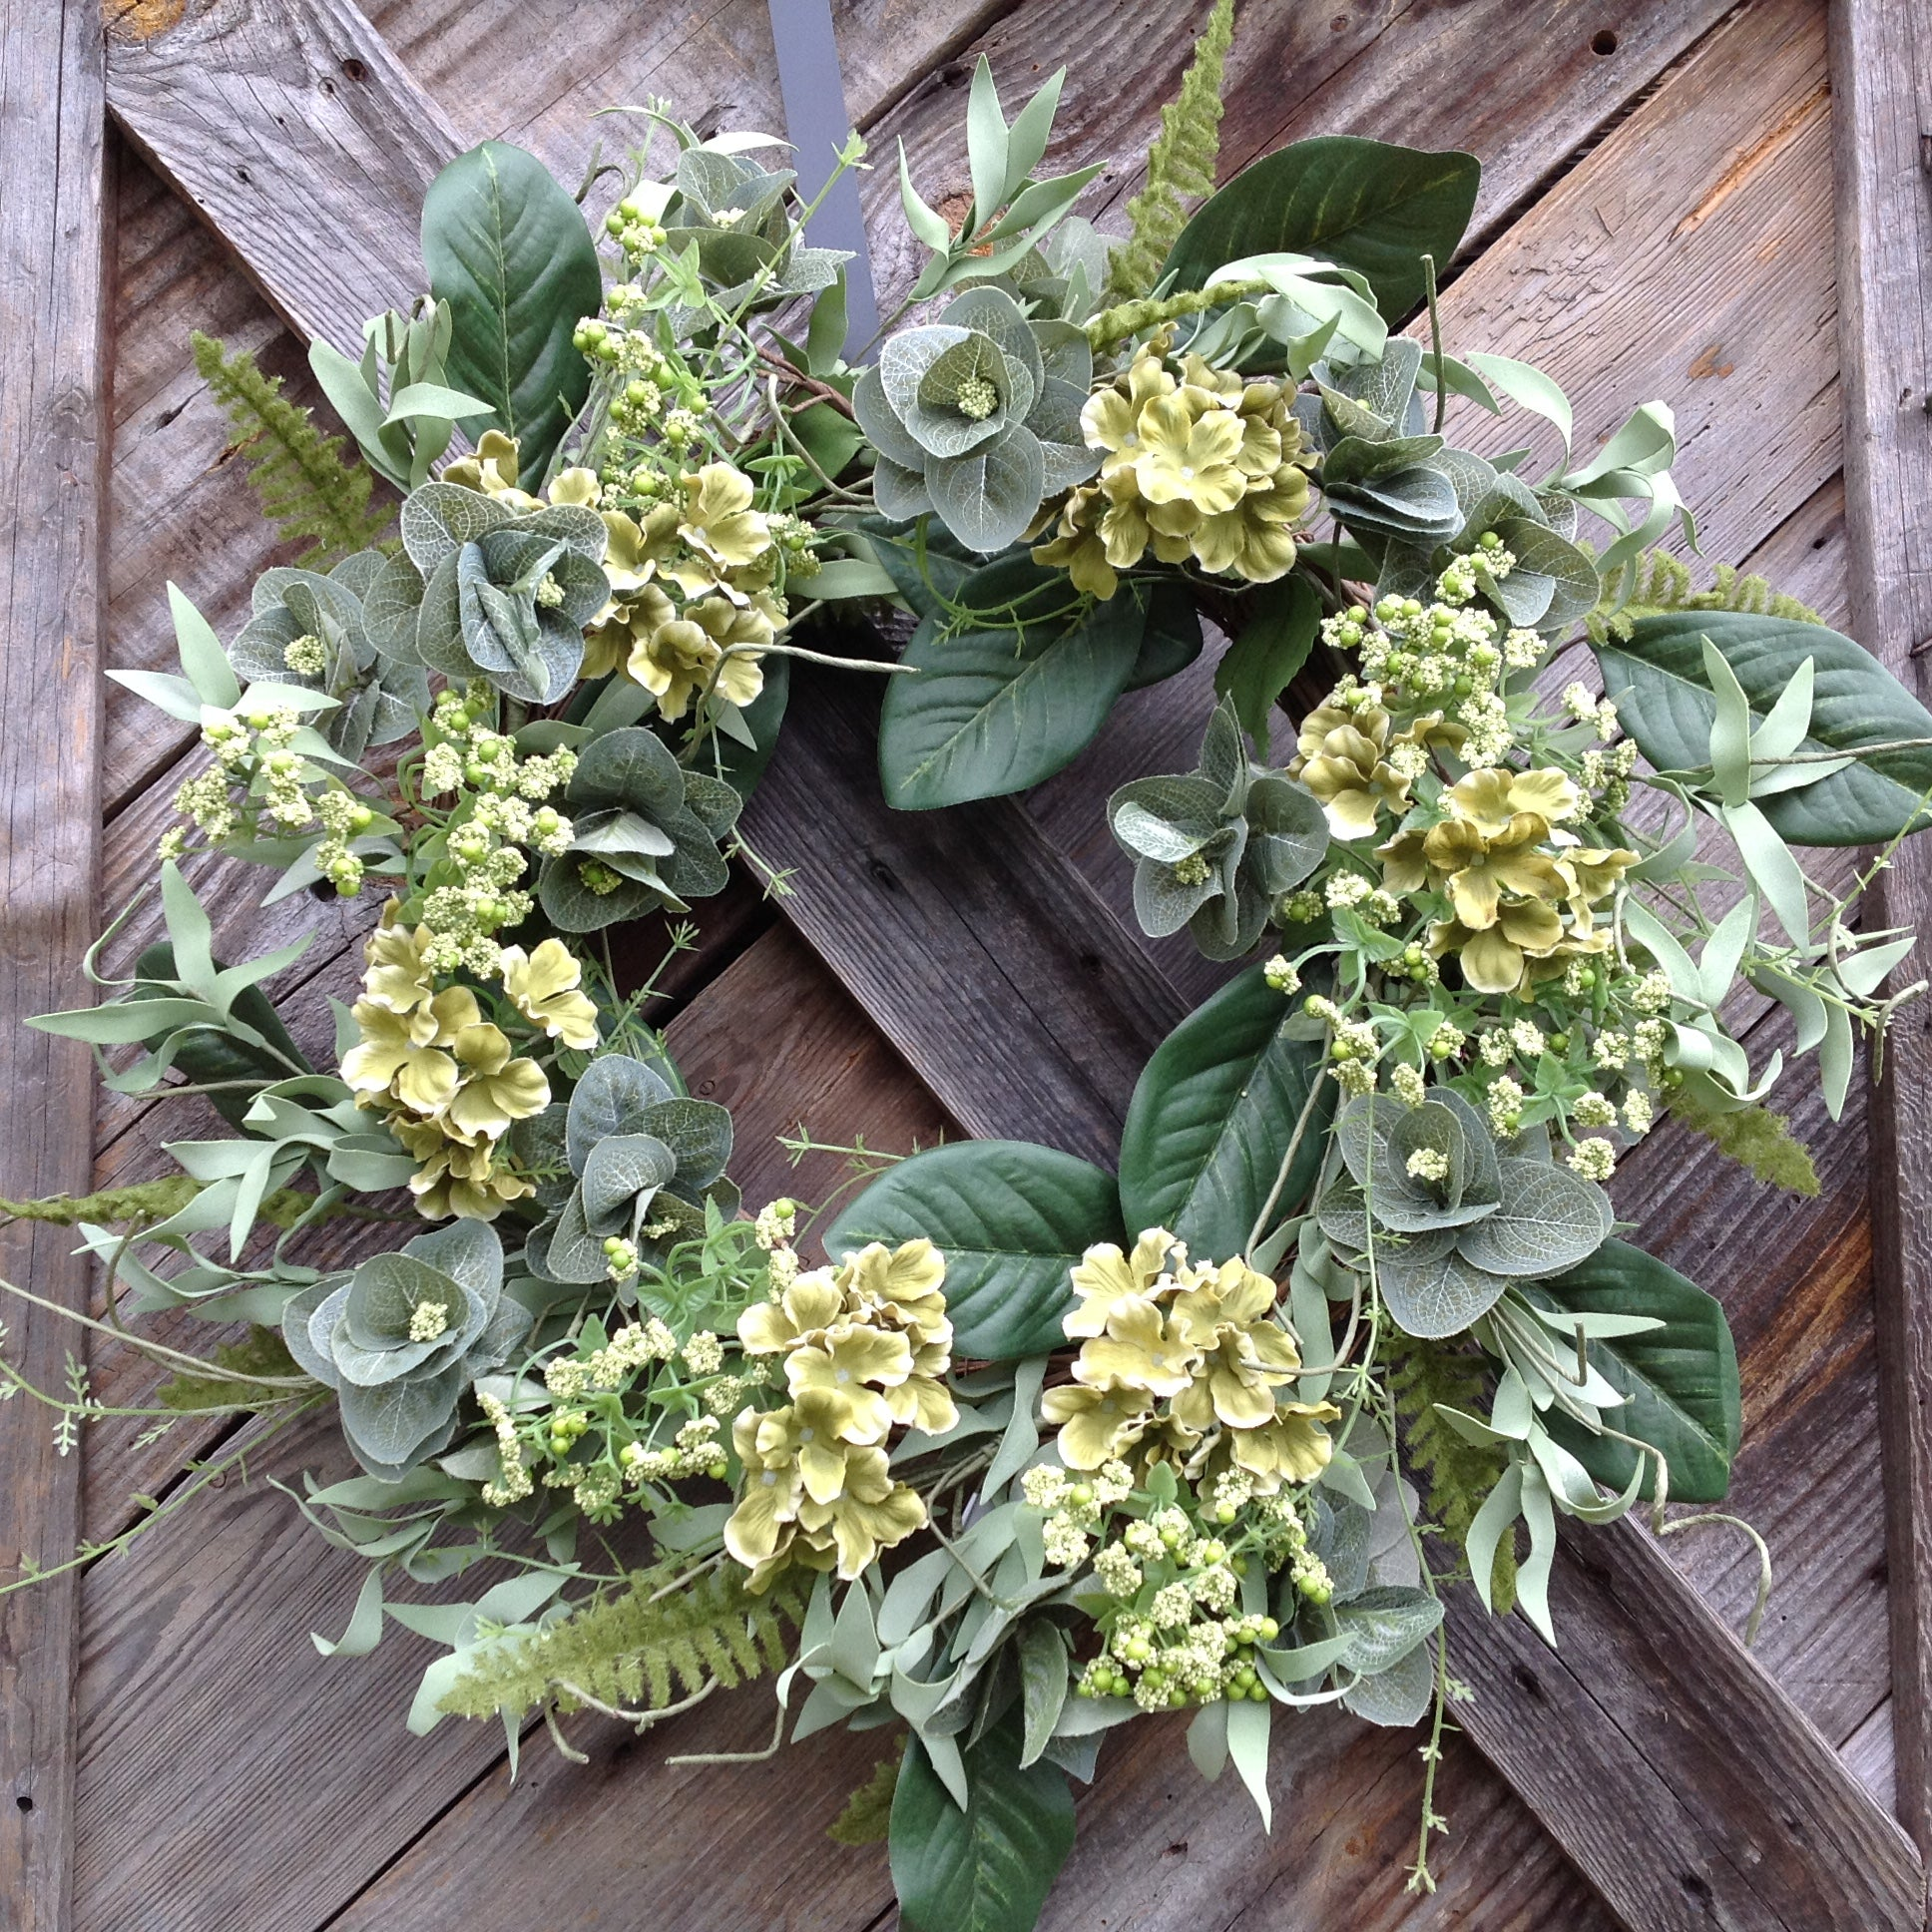 Farm House Hydrangea Wreath -24""